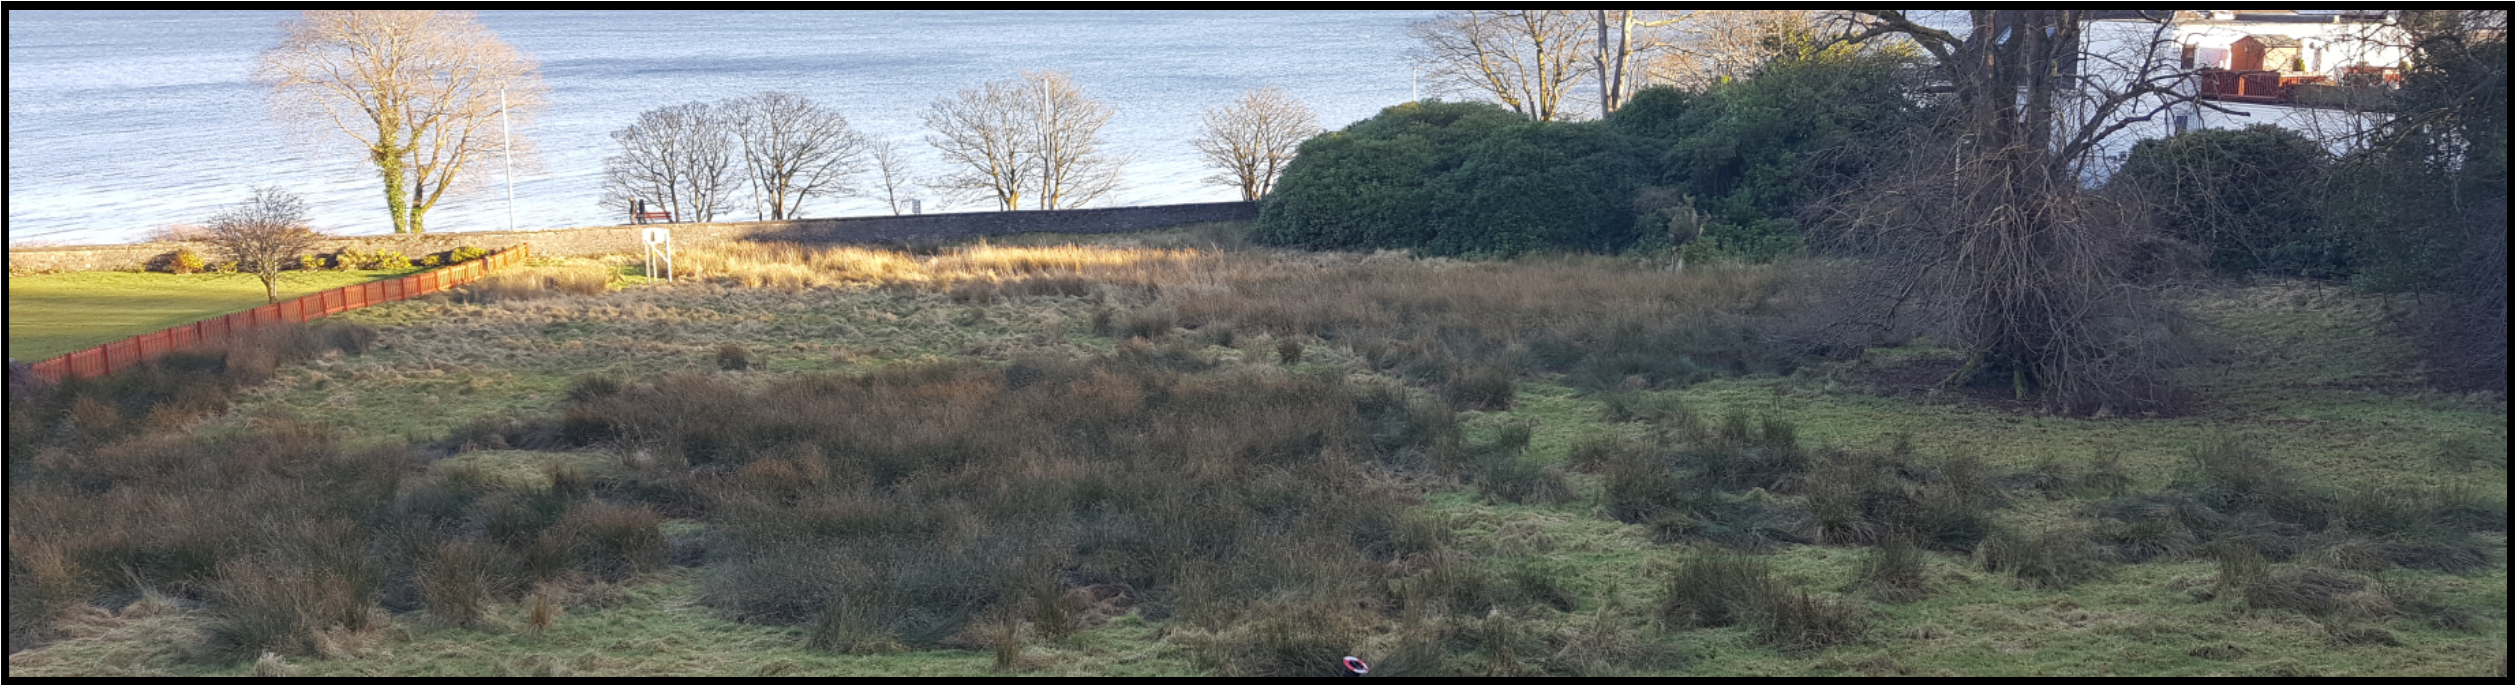 Dunclutha Estate wide view of grounds